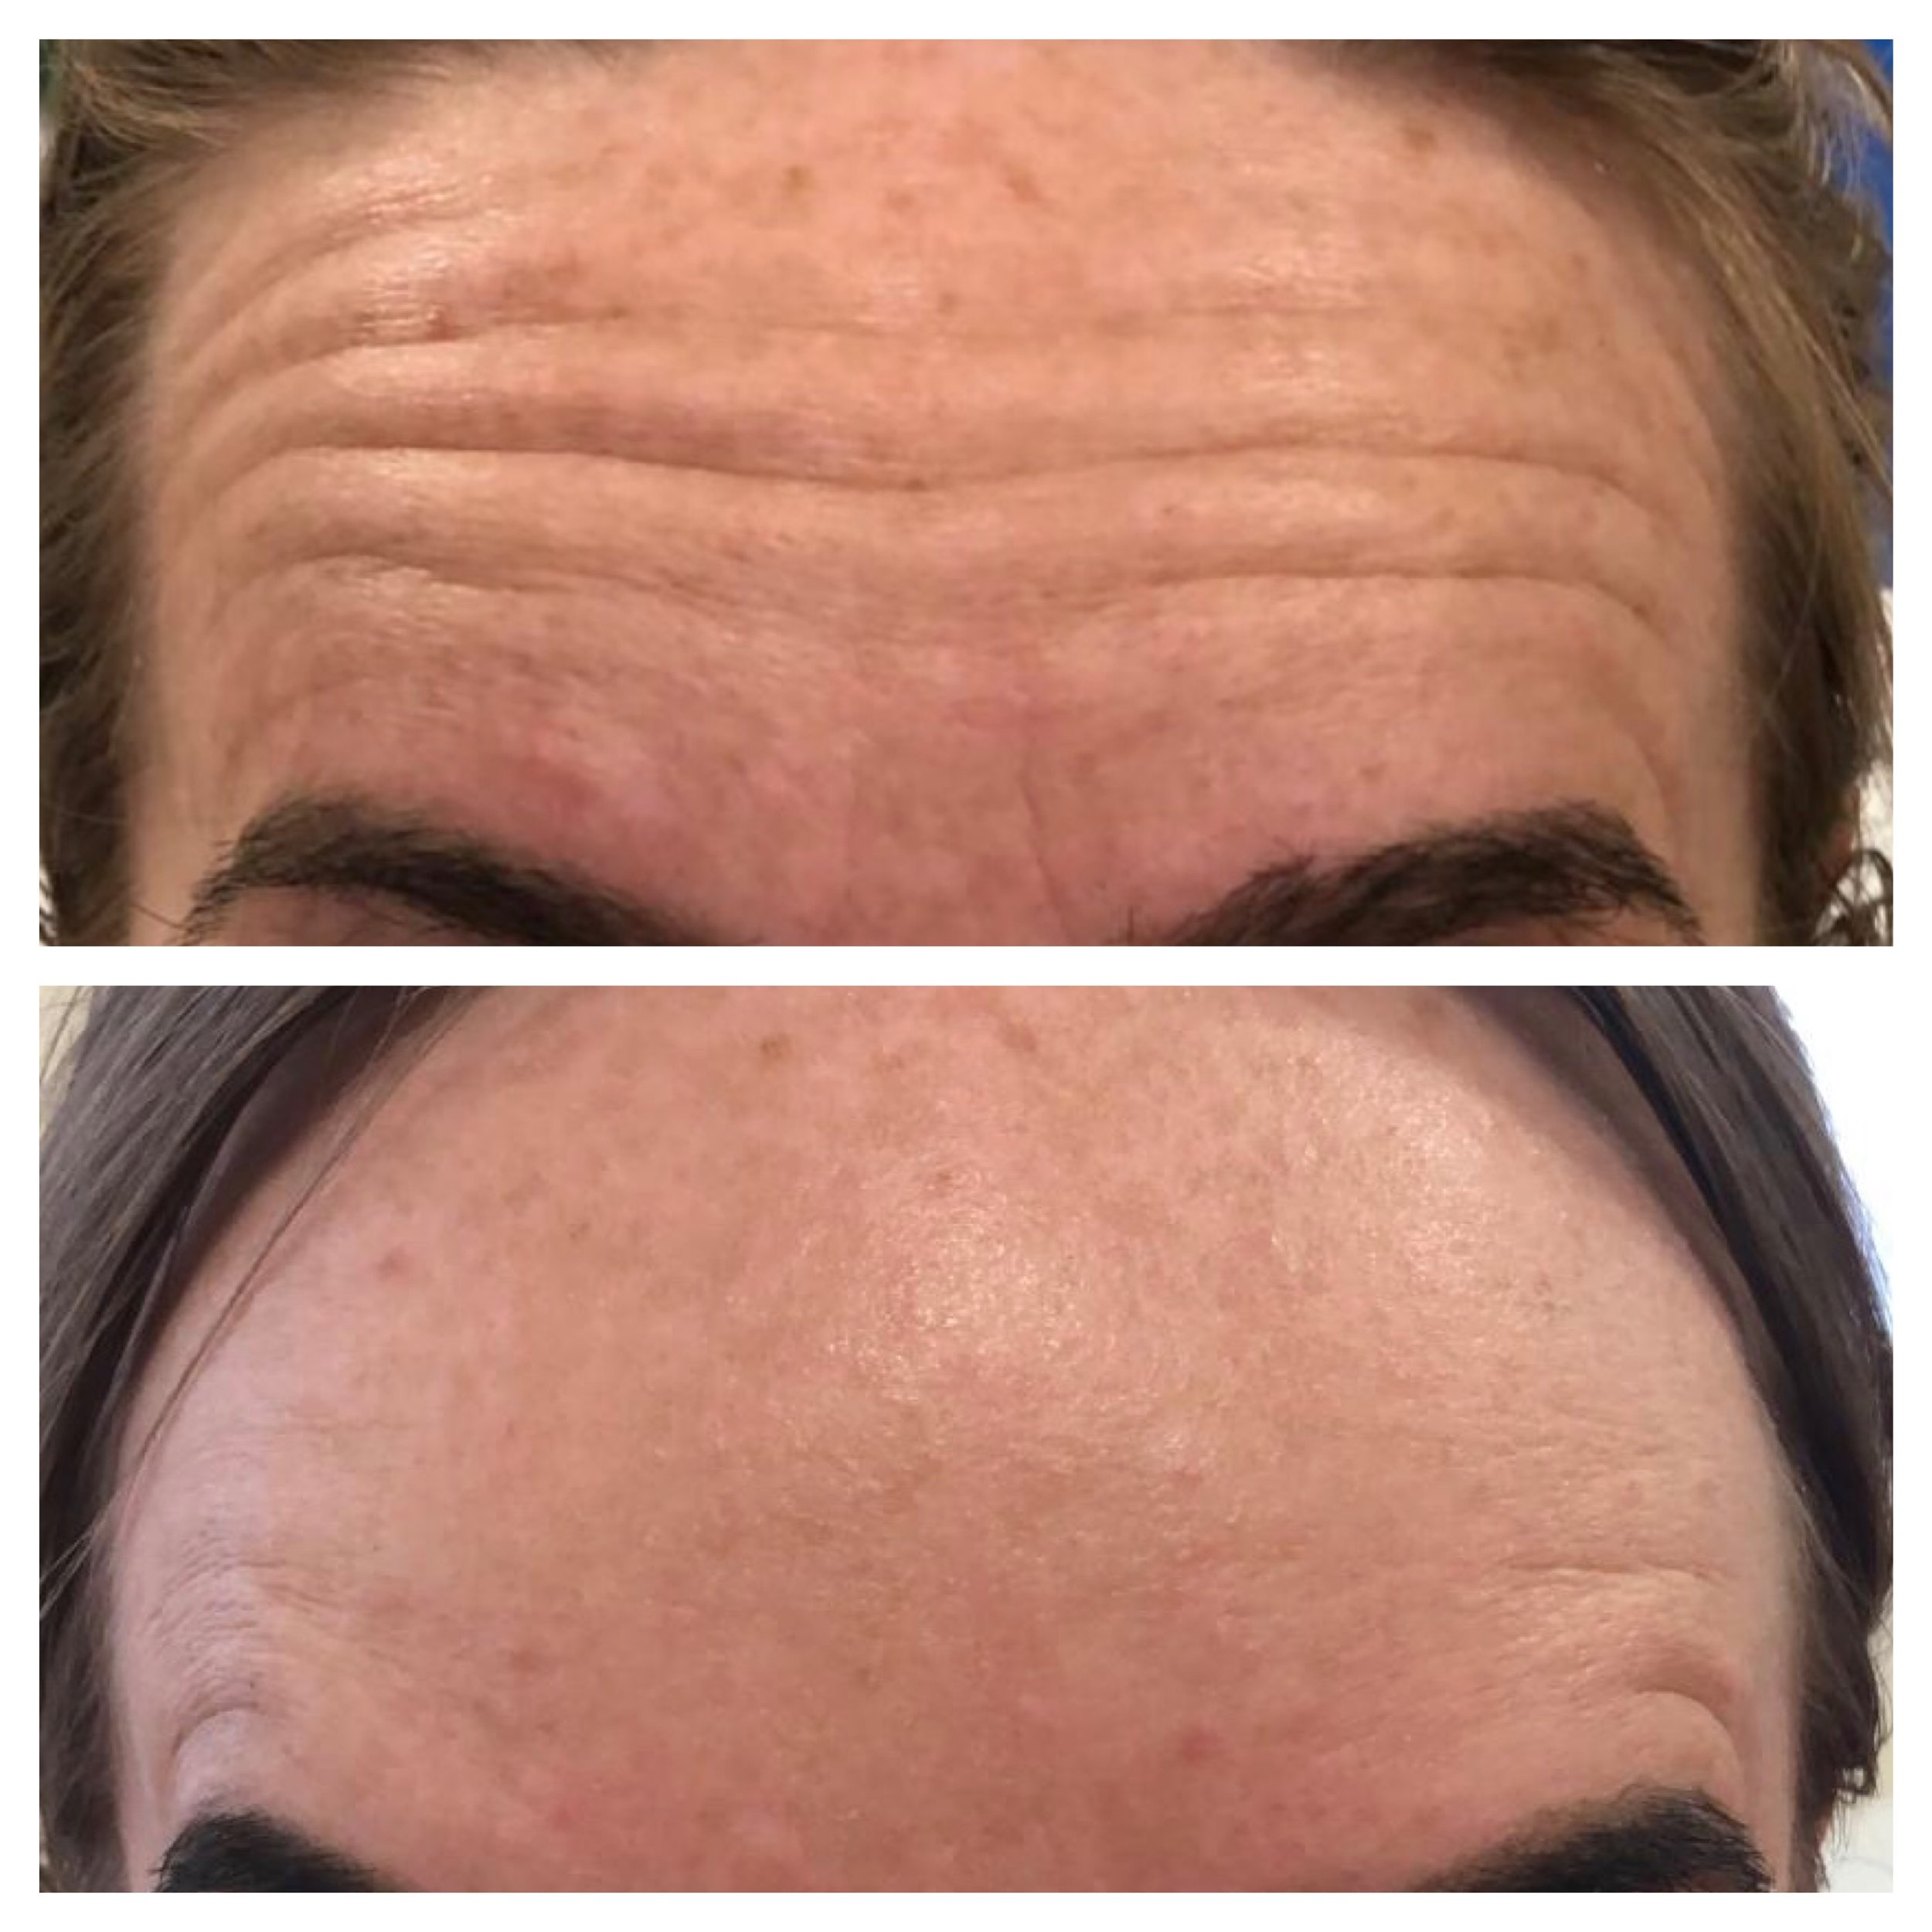 Before & After Botox Treatment for the Forehead Lines